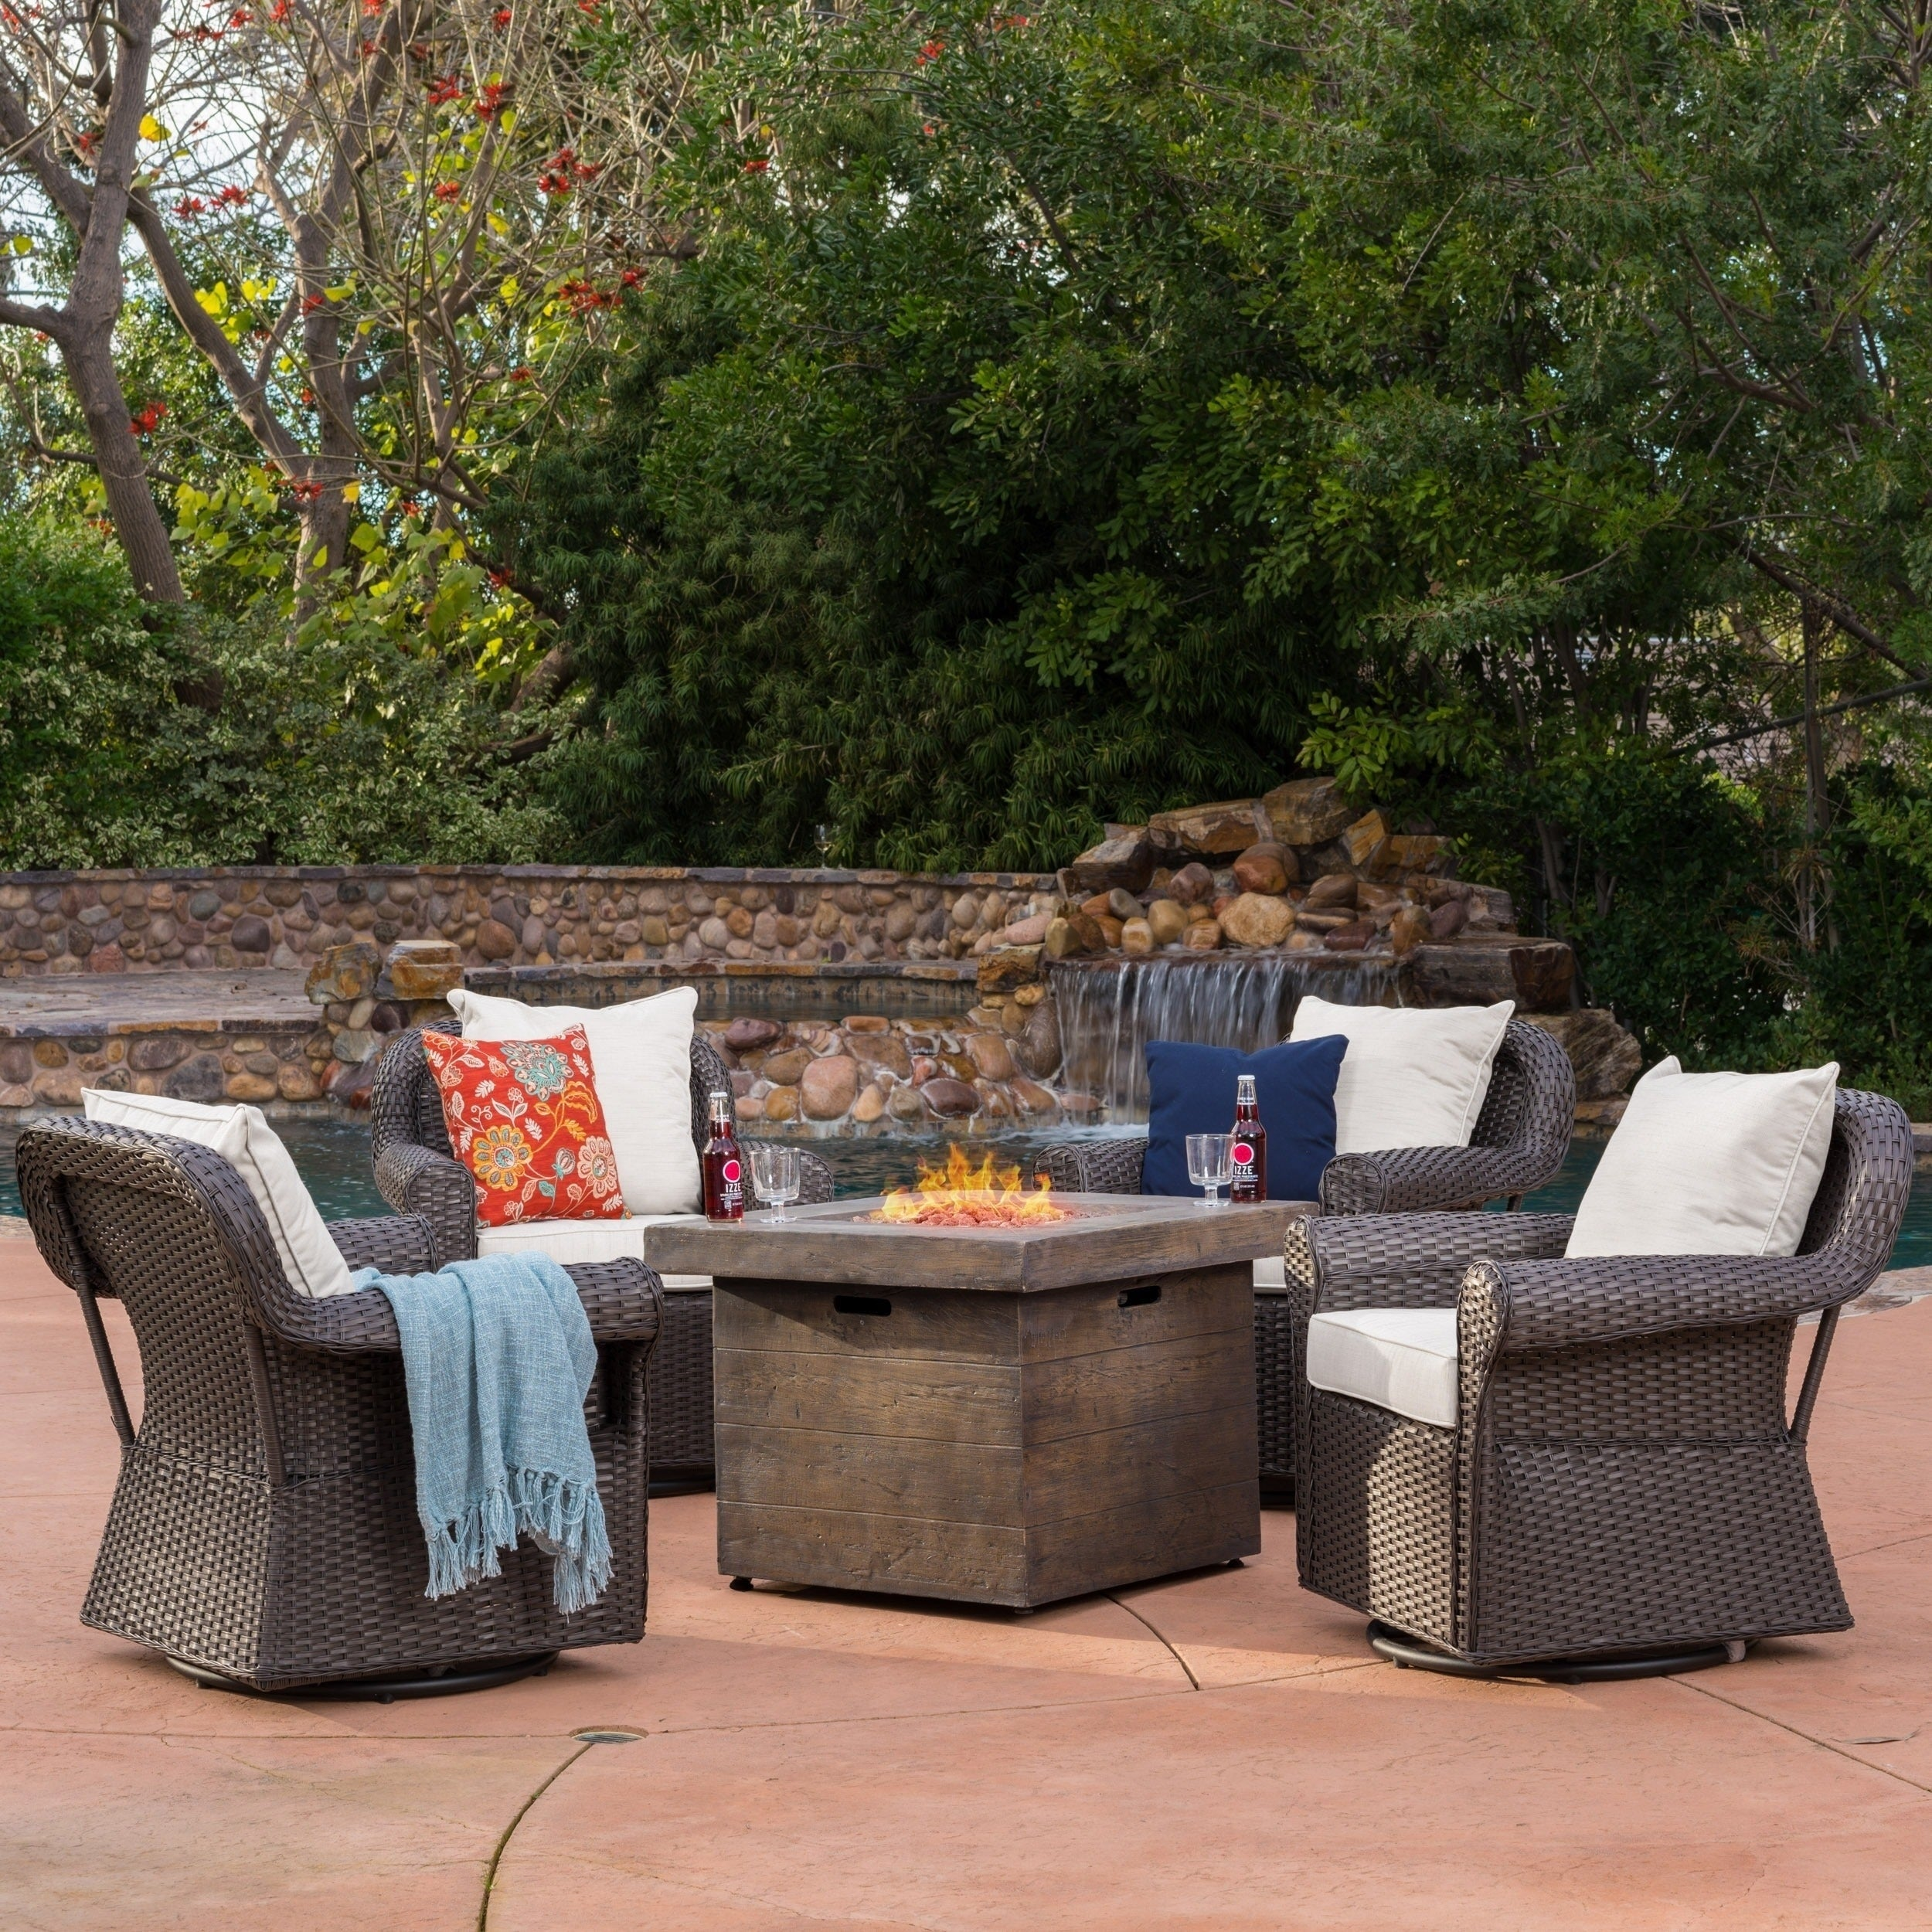 Image of: Shop Black Friday Deals On Arlington Outdoor 5 Piece Gas Firepit Seating Set By Christopher Knight Home Overstock 14297984